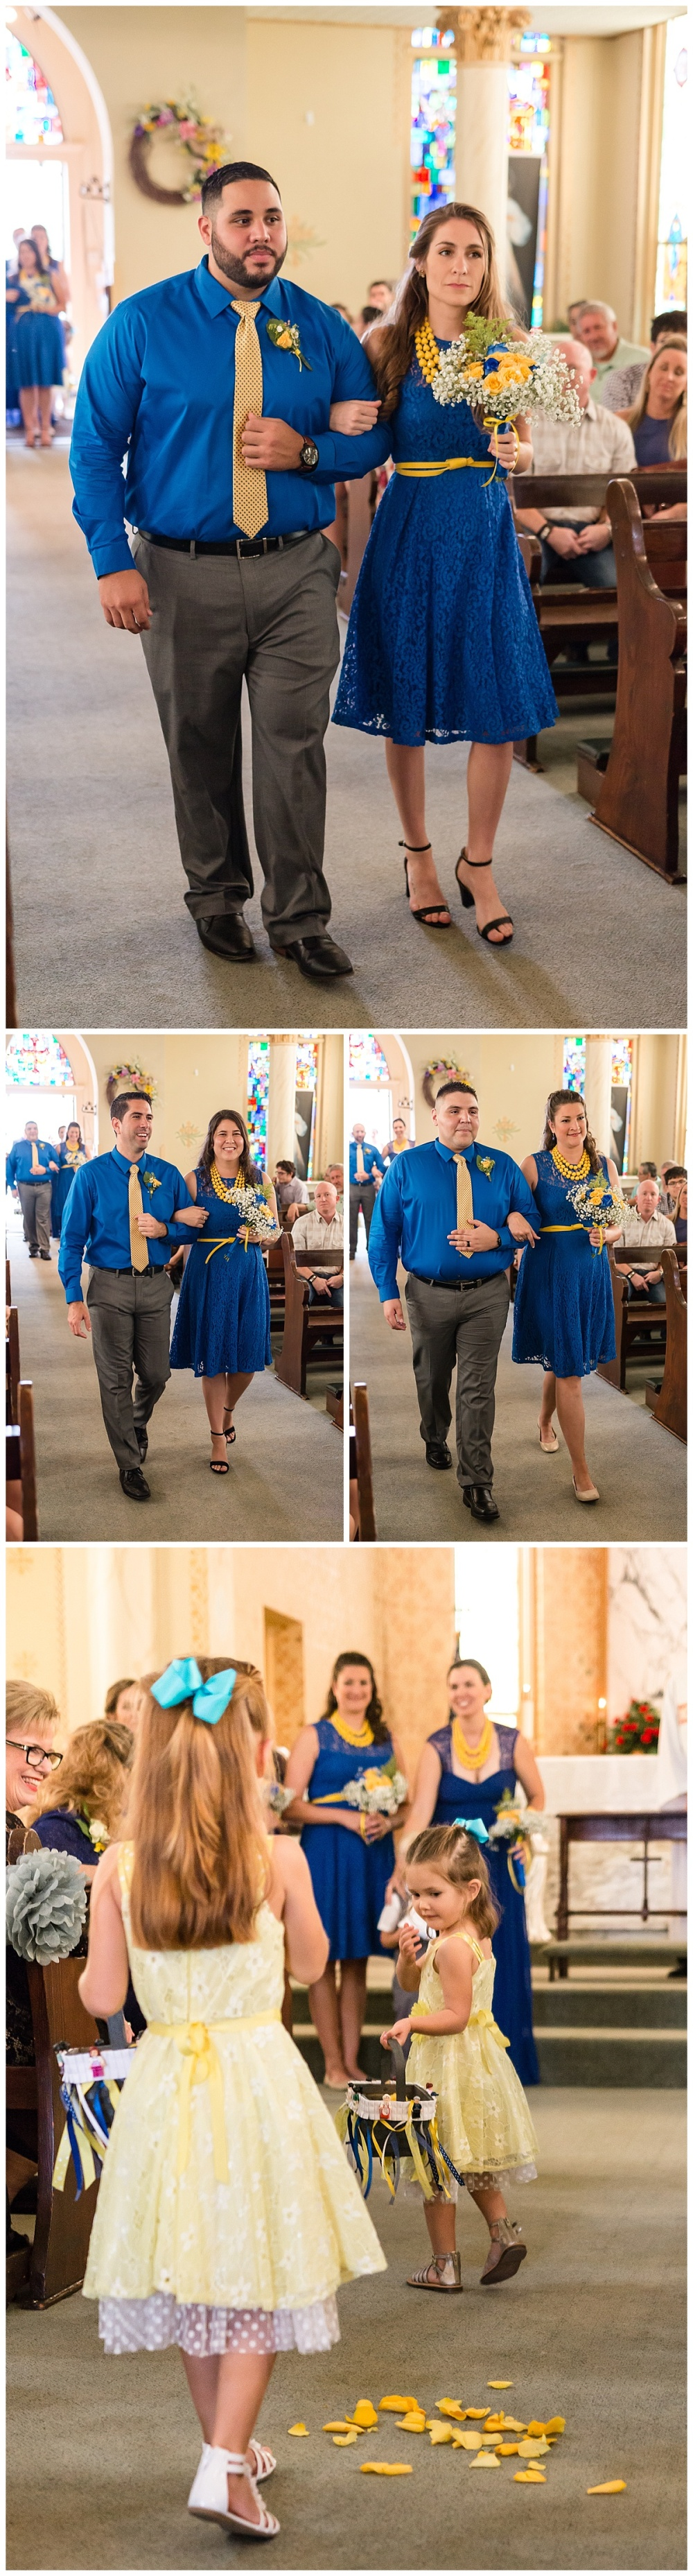 Texas-Wedding-Photographer-La-Coste-Our-Lady-Of-Grace-Church-Bride-Groom-Lego-Theme-Carly-Barton-Photography_0048.jpg